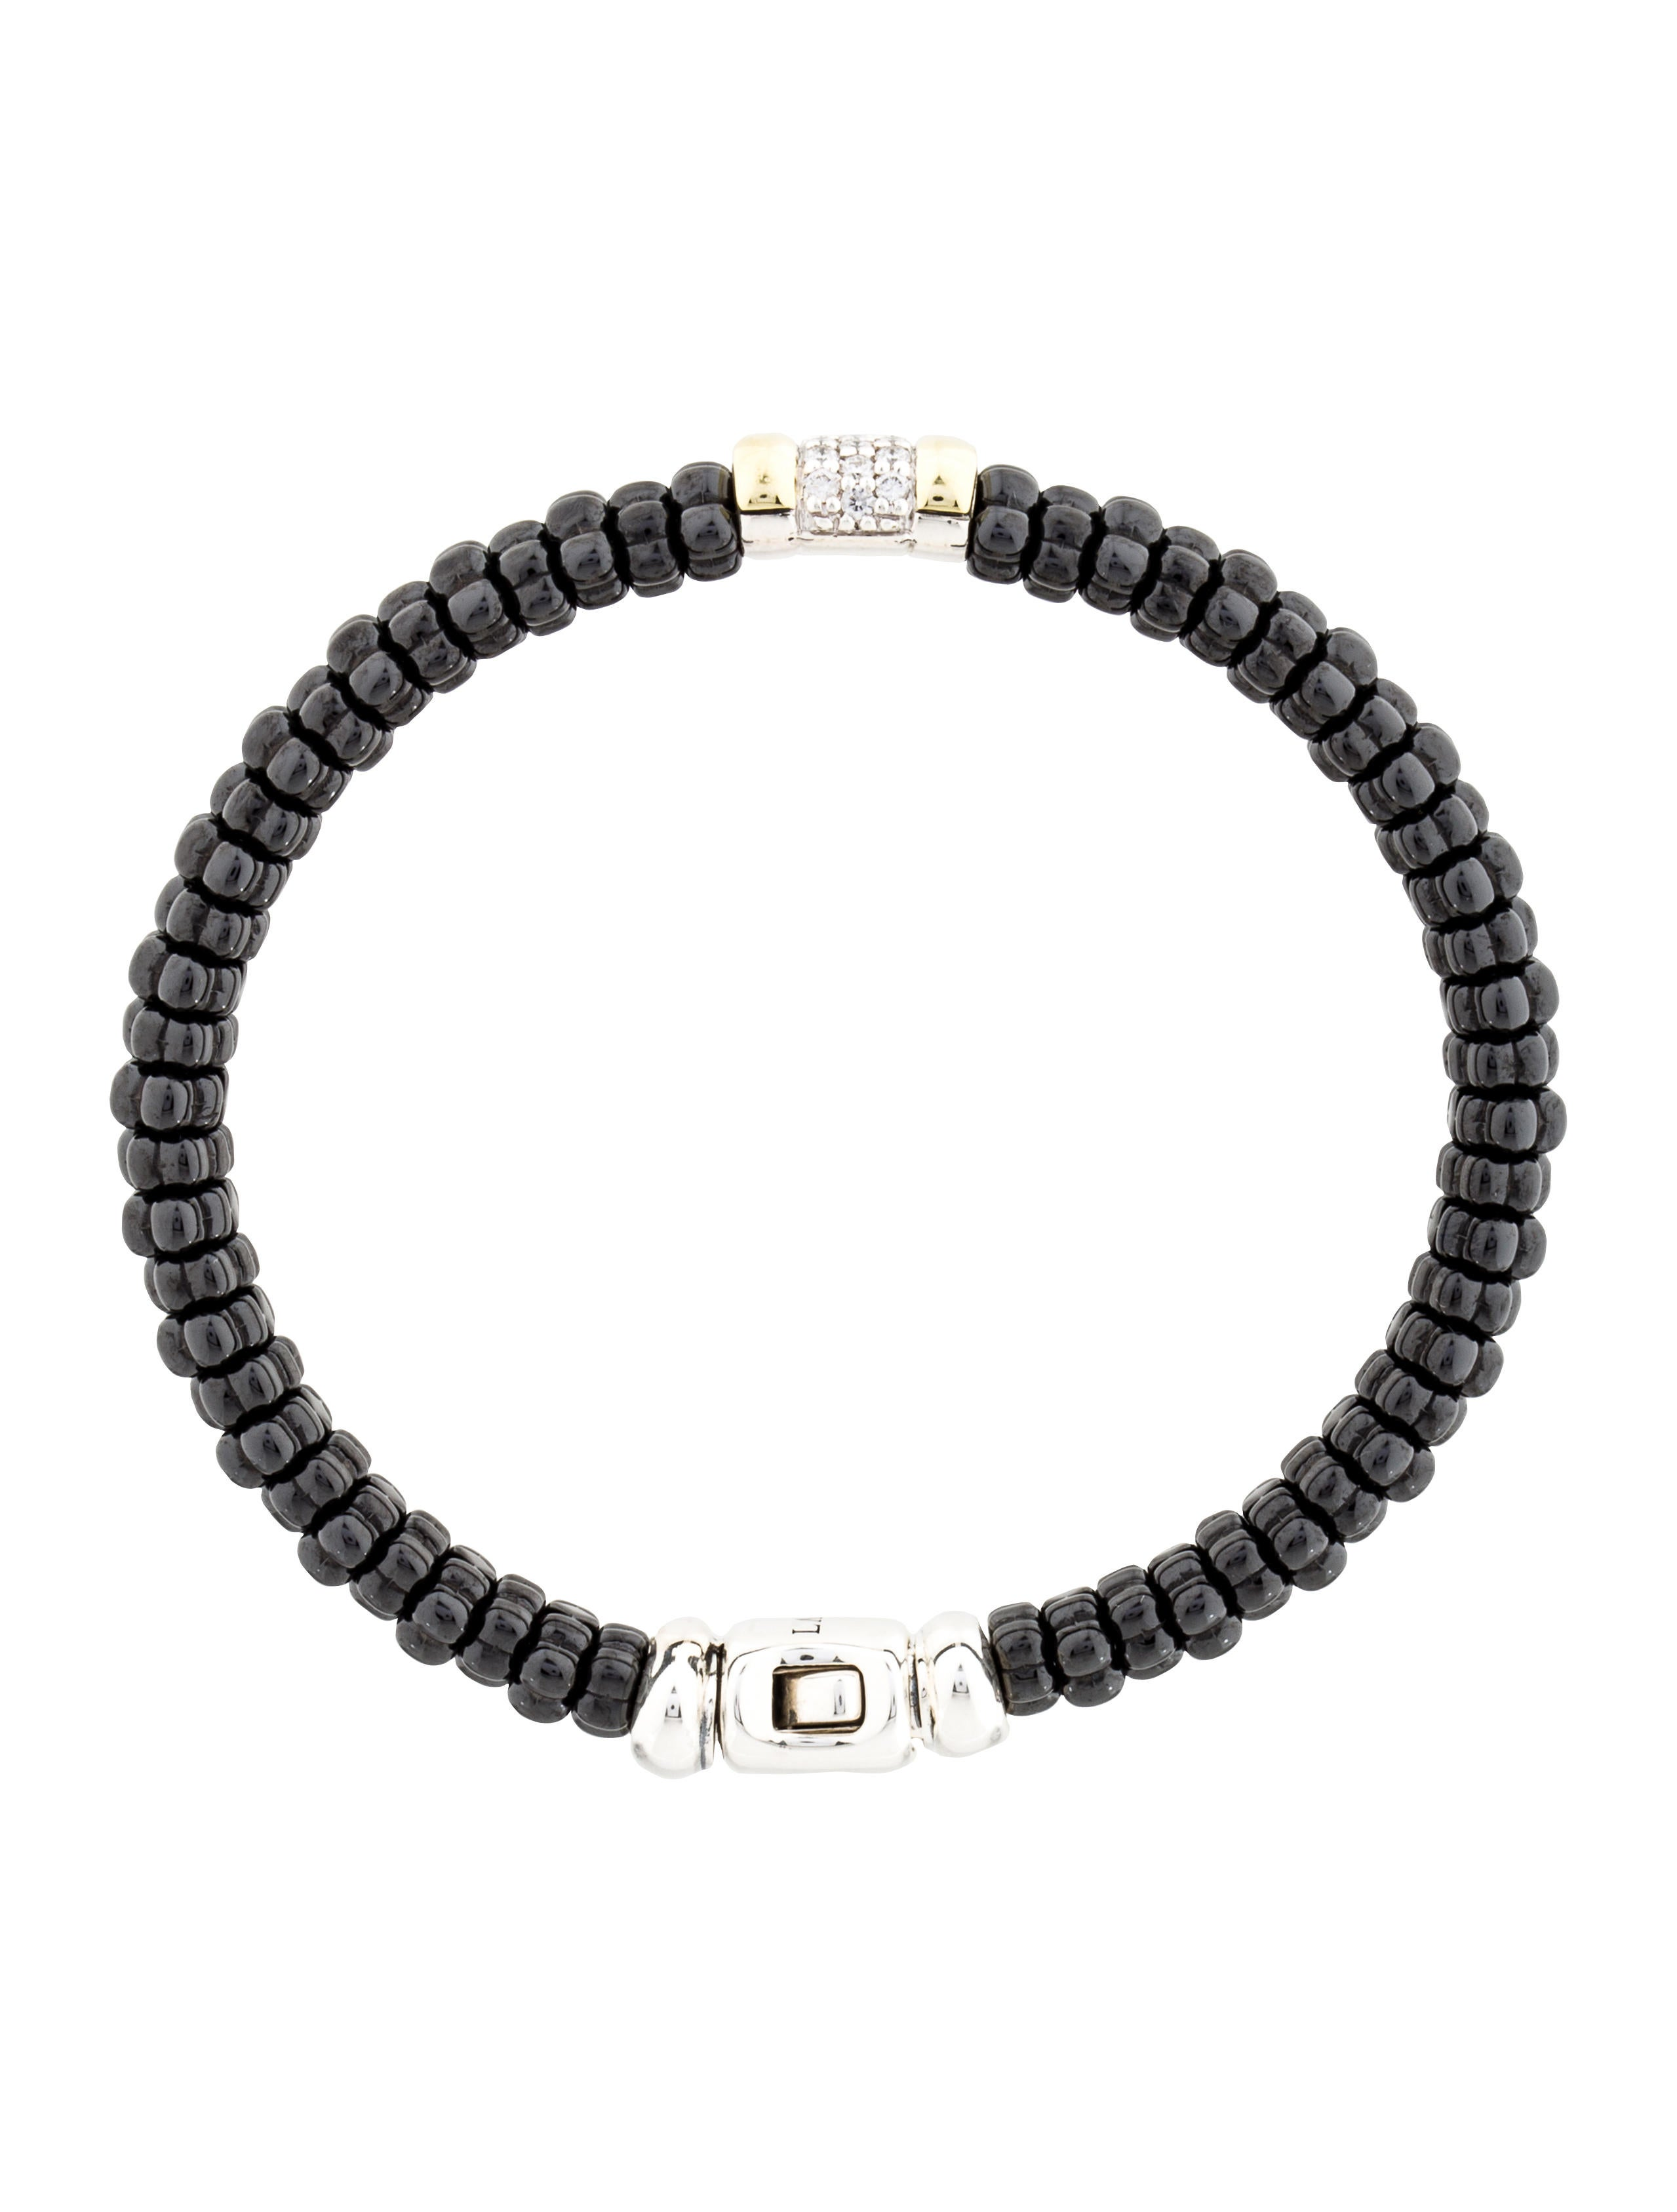 Lagos Diamond Black Caviar Beaded Bracelet 1 also Bezel Set Four Stone Ruby Drop Earrings 1 28 Ctw Buritalp3 39573erd further Marquise Engagement Rings additionally Matter of size additionally Orra Platinum Ring For Her 34524. on 1 carat stone size